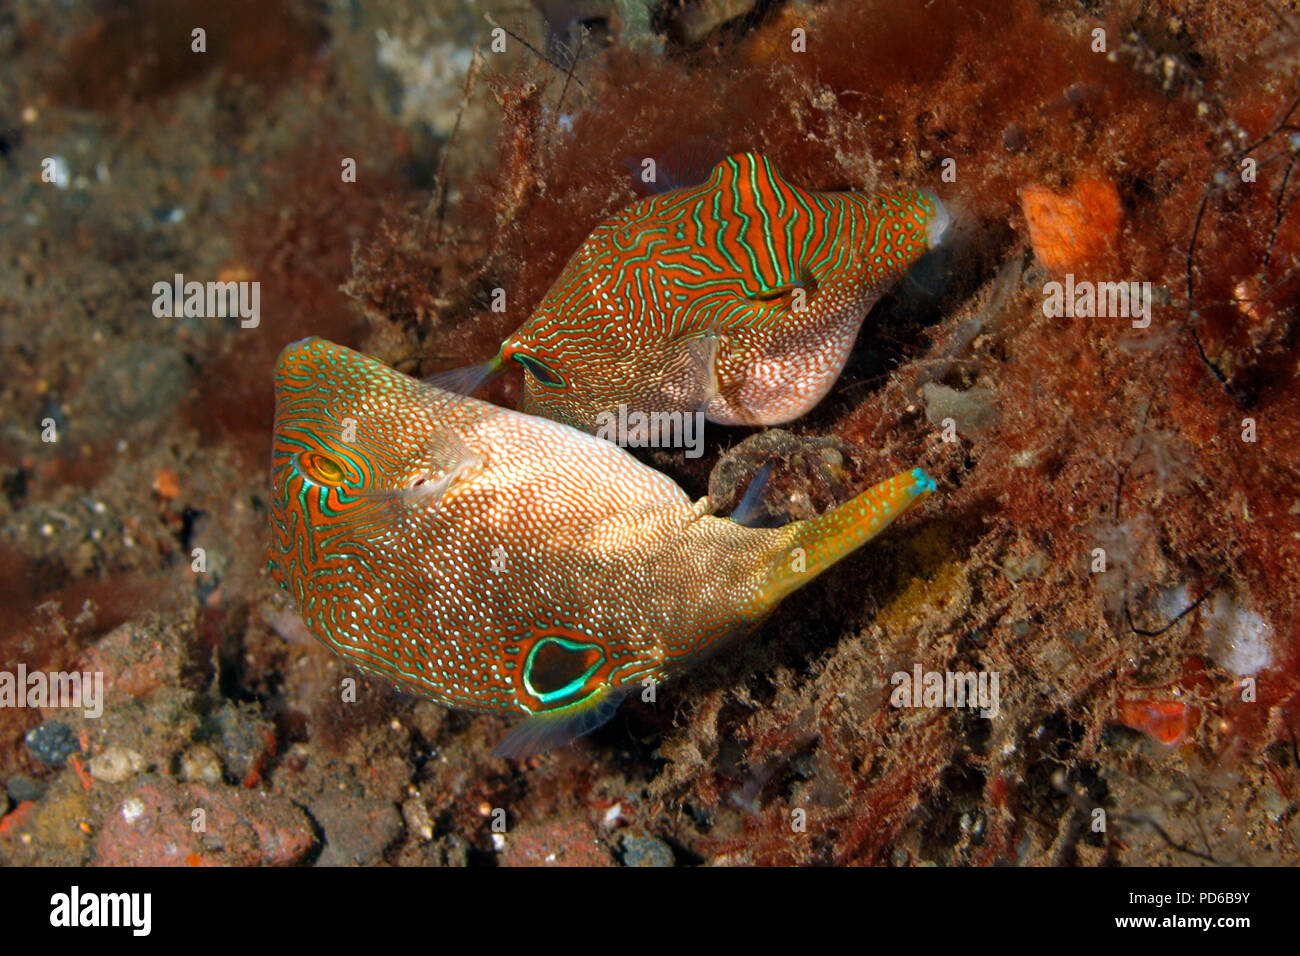 fingerprint-toby-also-known-as-compressed-toby-fingerprint-sharpnose-puffer-fine-spotted-pufferfish-canthigaster-compressa-see-below-for-more-PD6B9Y.jpg